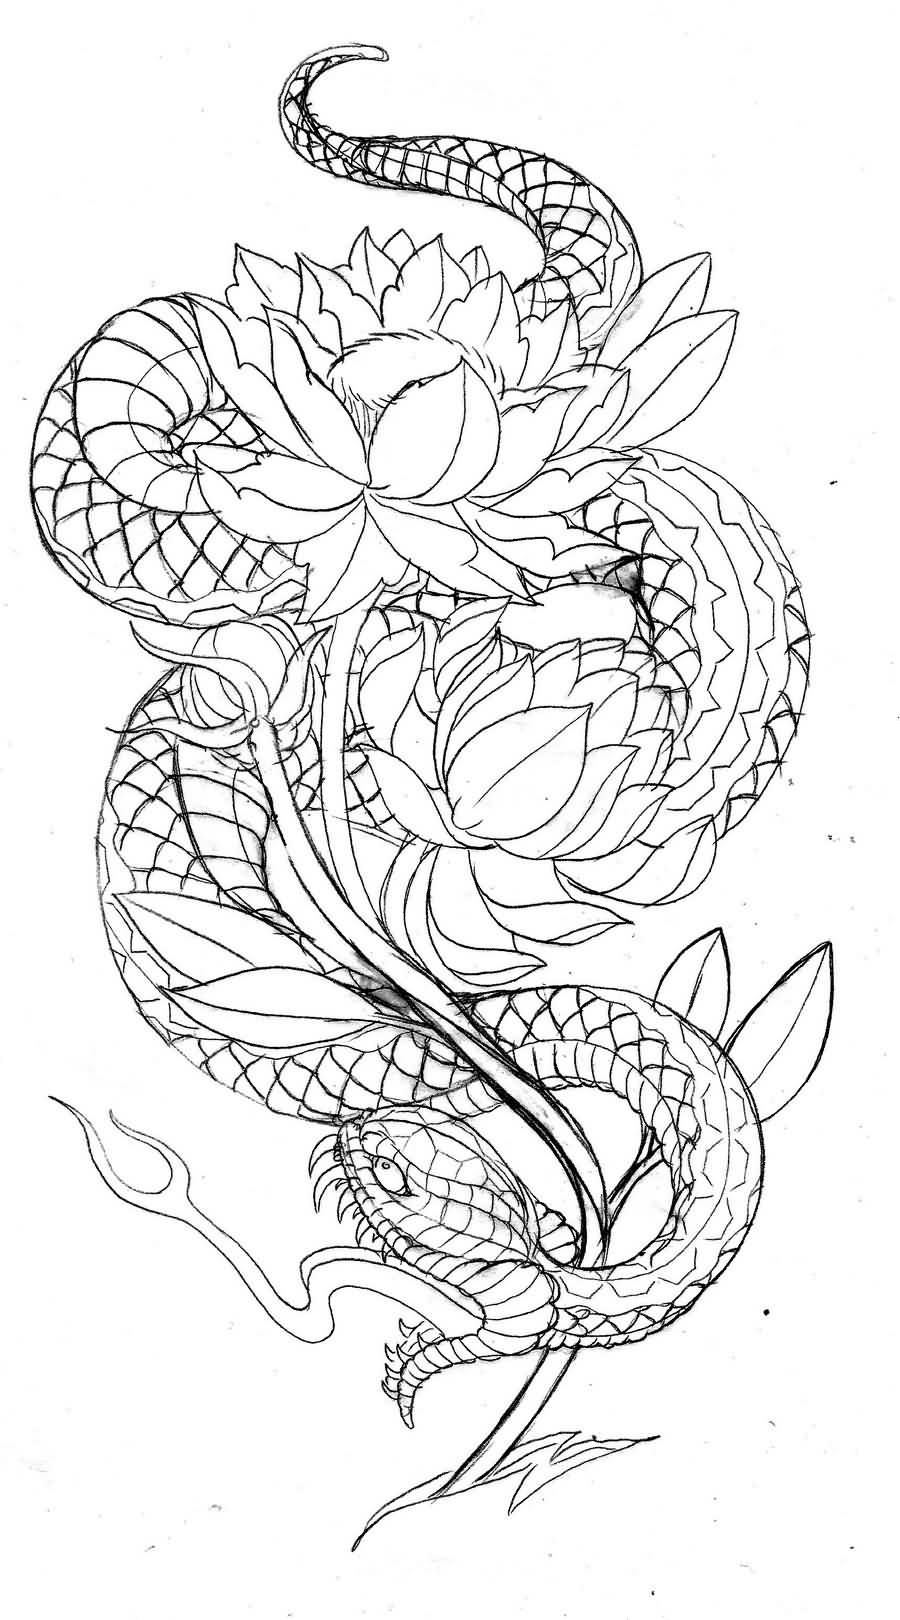 Japanese Dragon Outline Fantastice Tattoo Graphic Design